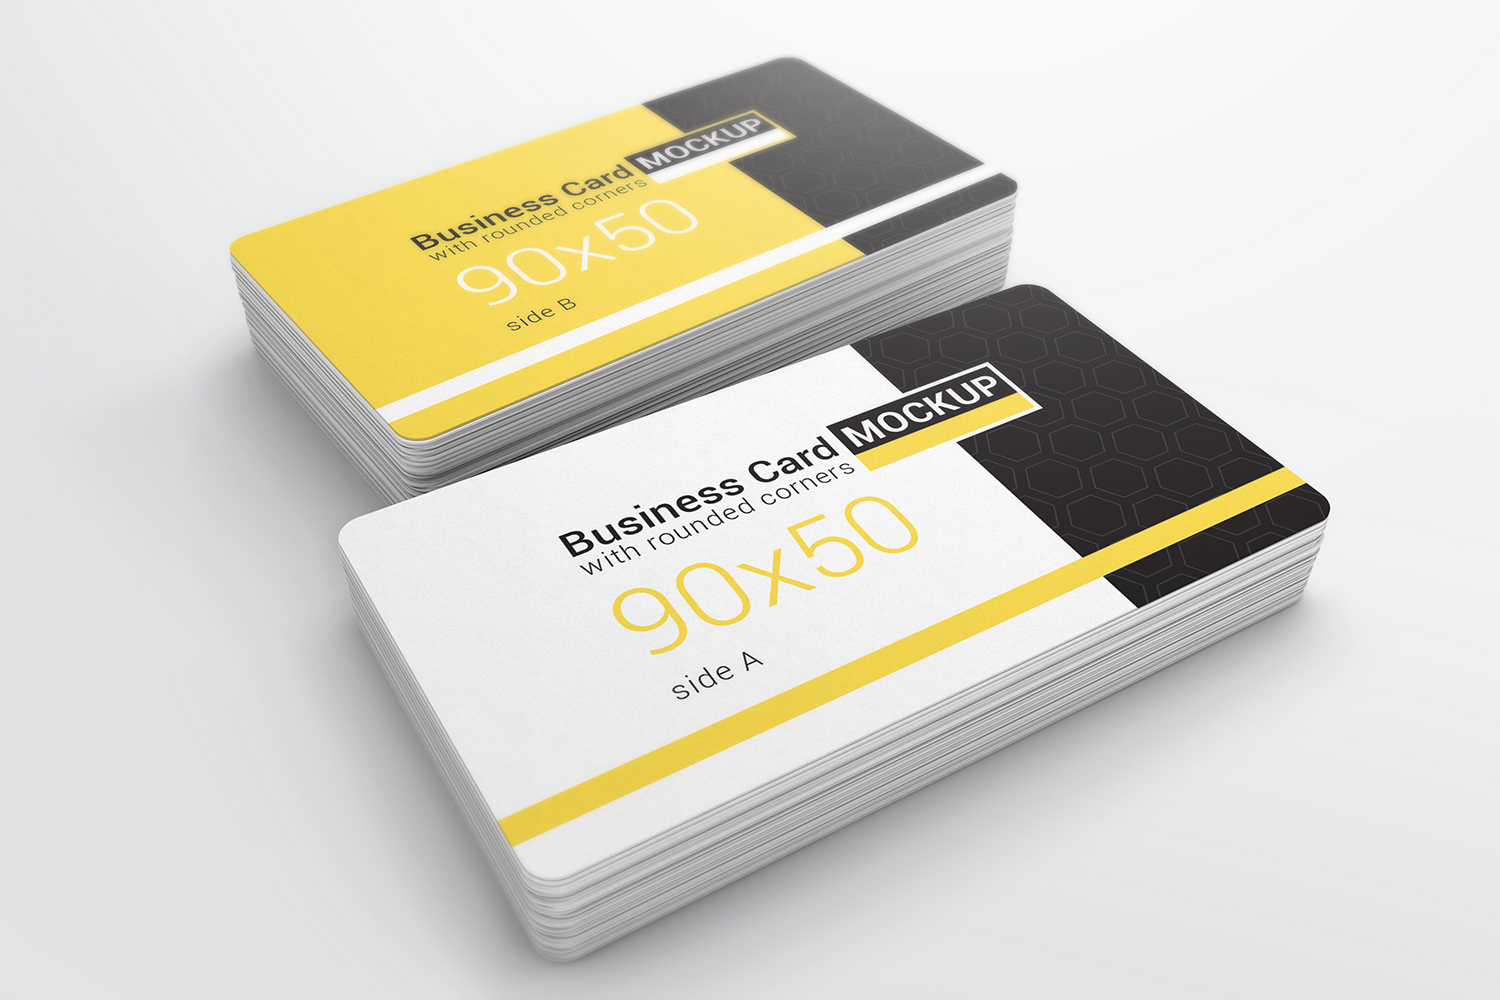 Business Card With Rounded Corners Mockups example image 4